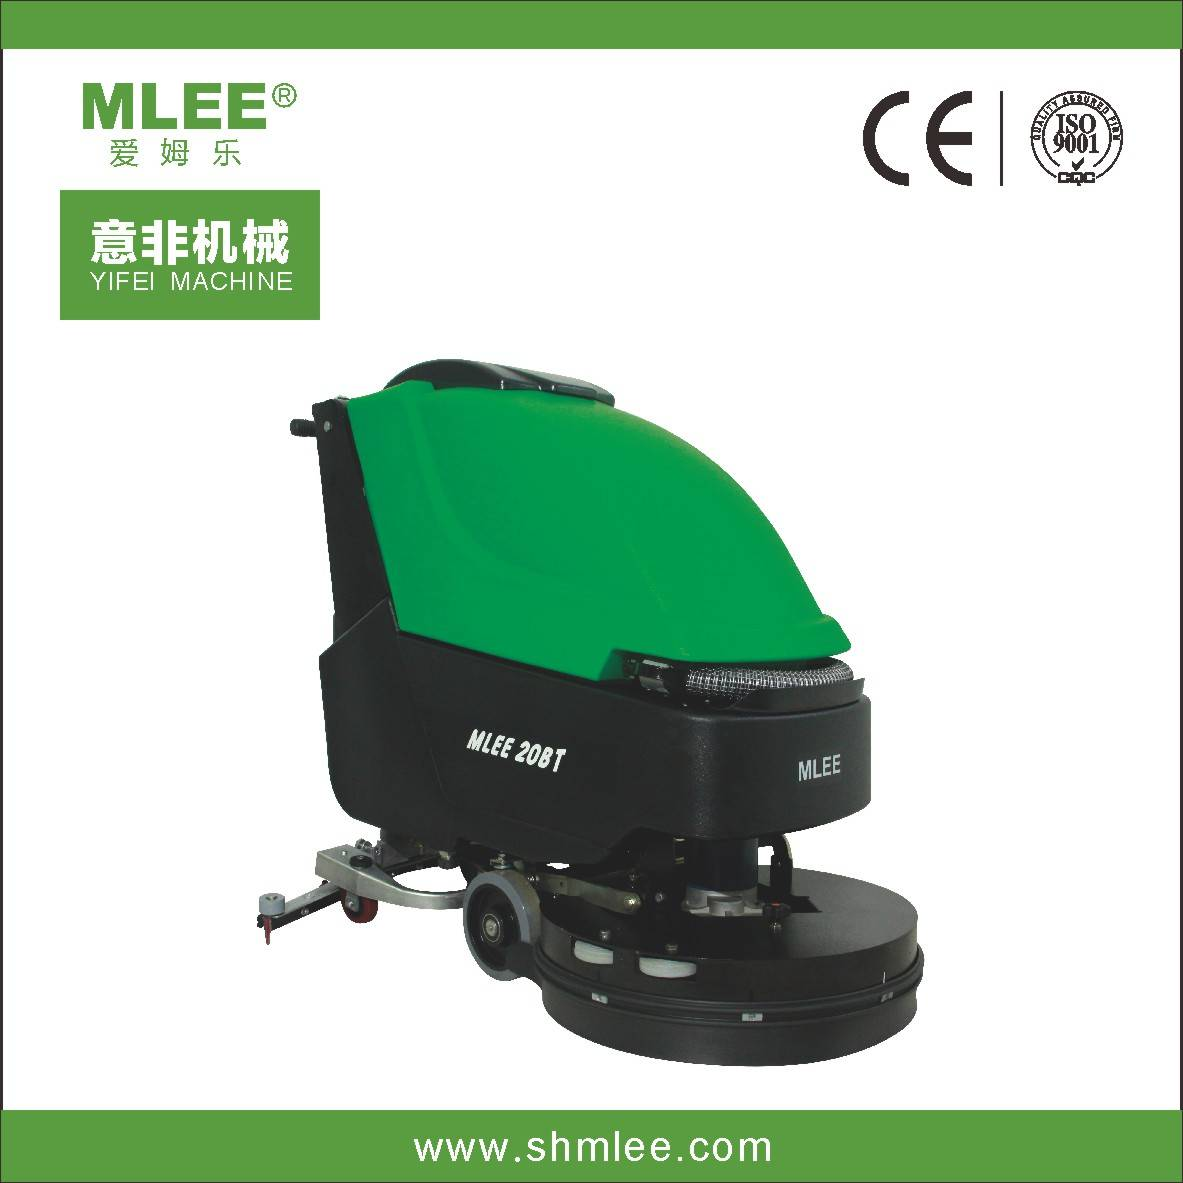 MLEE20BT walk behind electric automatic floor scrubber dryer